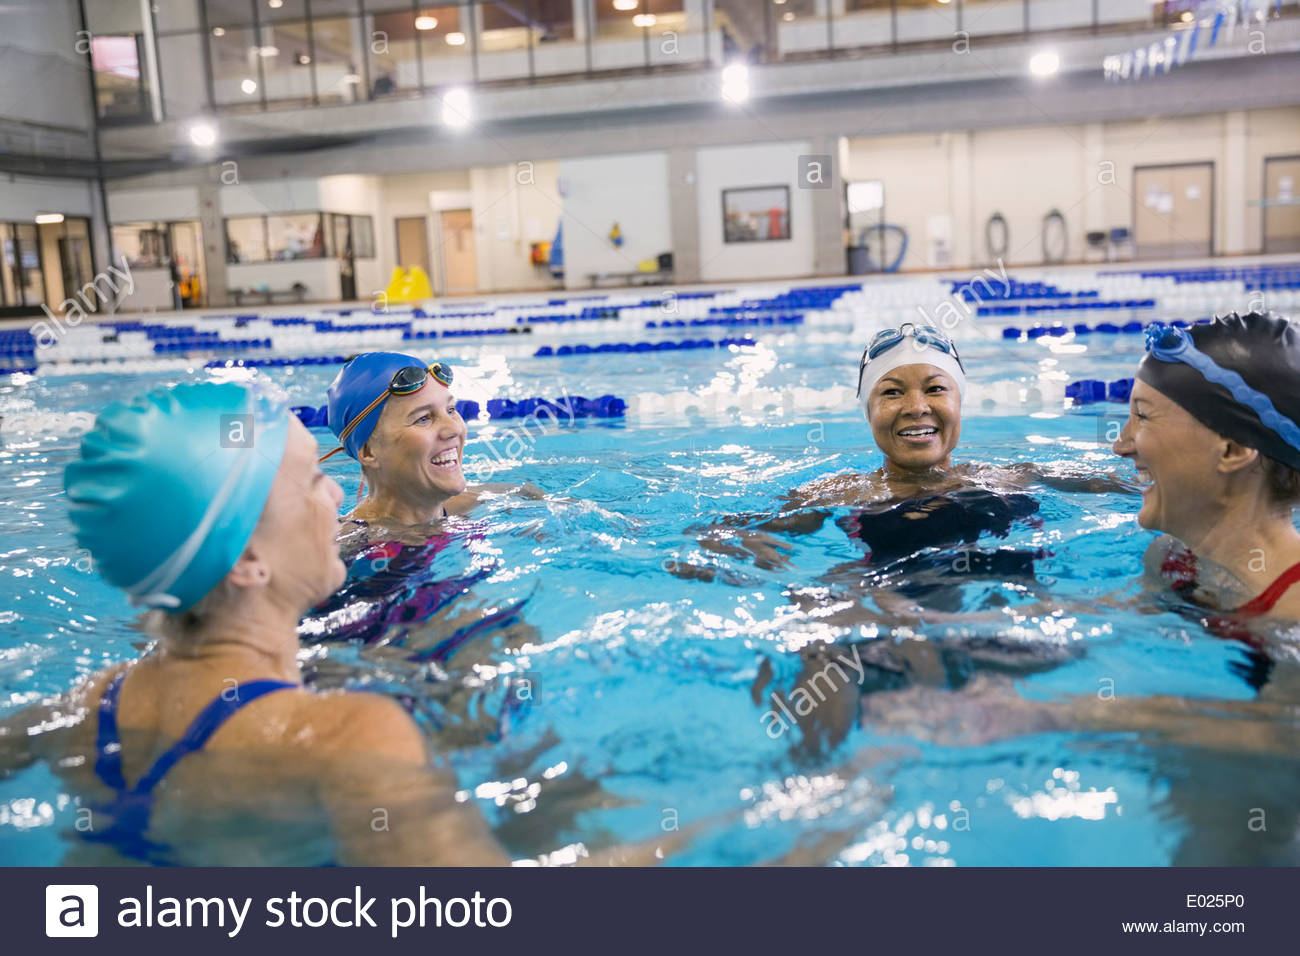 Women in indoor swimming pool - Stock Image